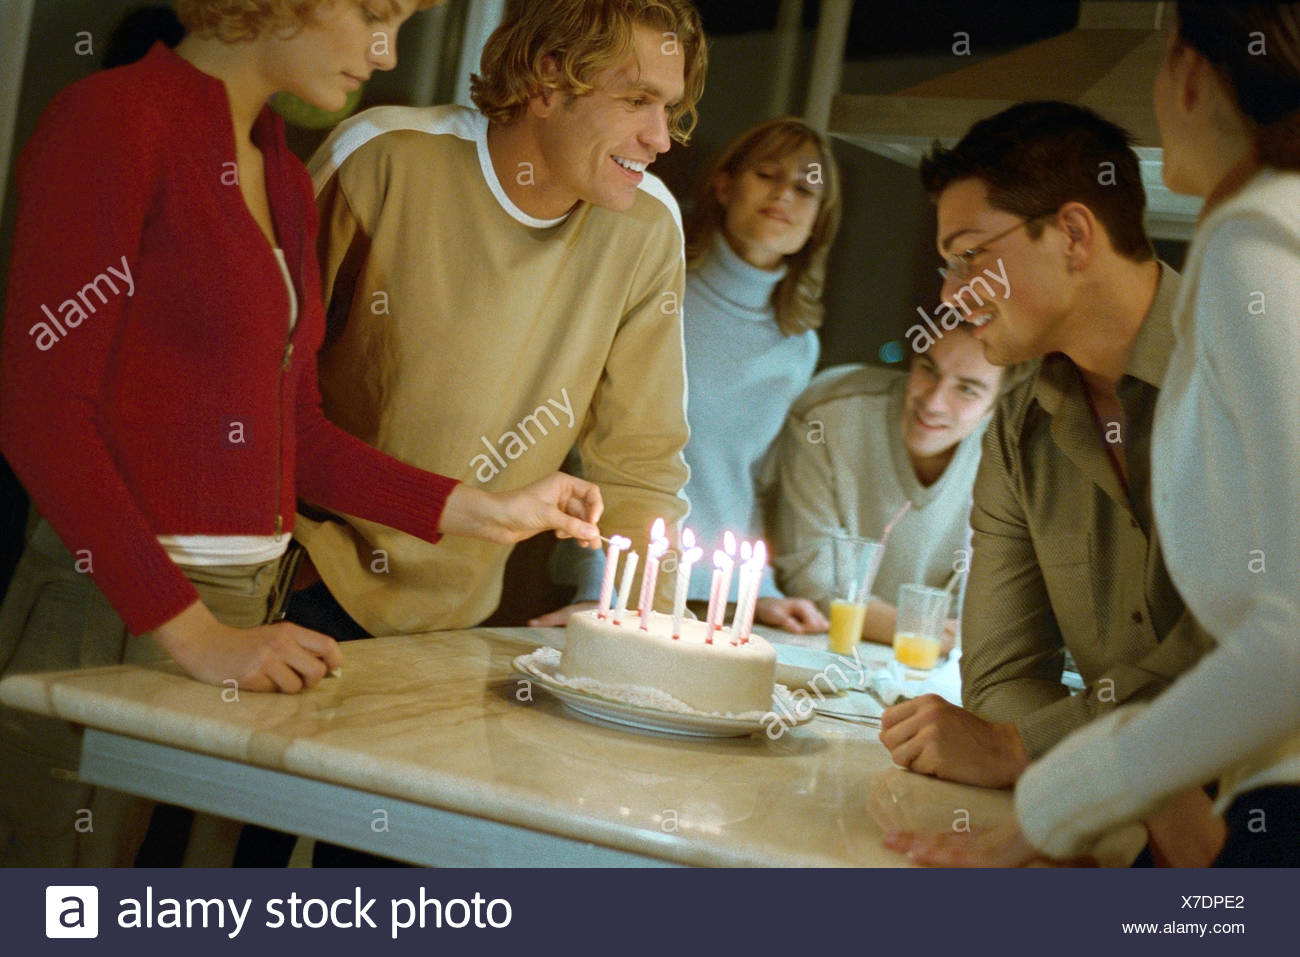 Woman Lighting Candles On Birthday Cake Friends Standing Nearby Smiling Watching